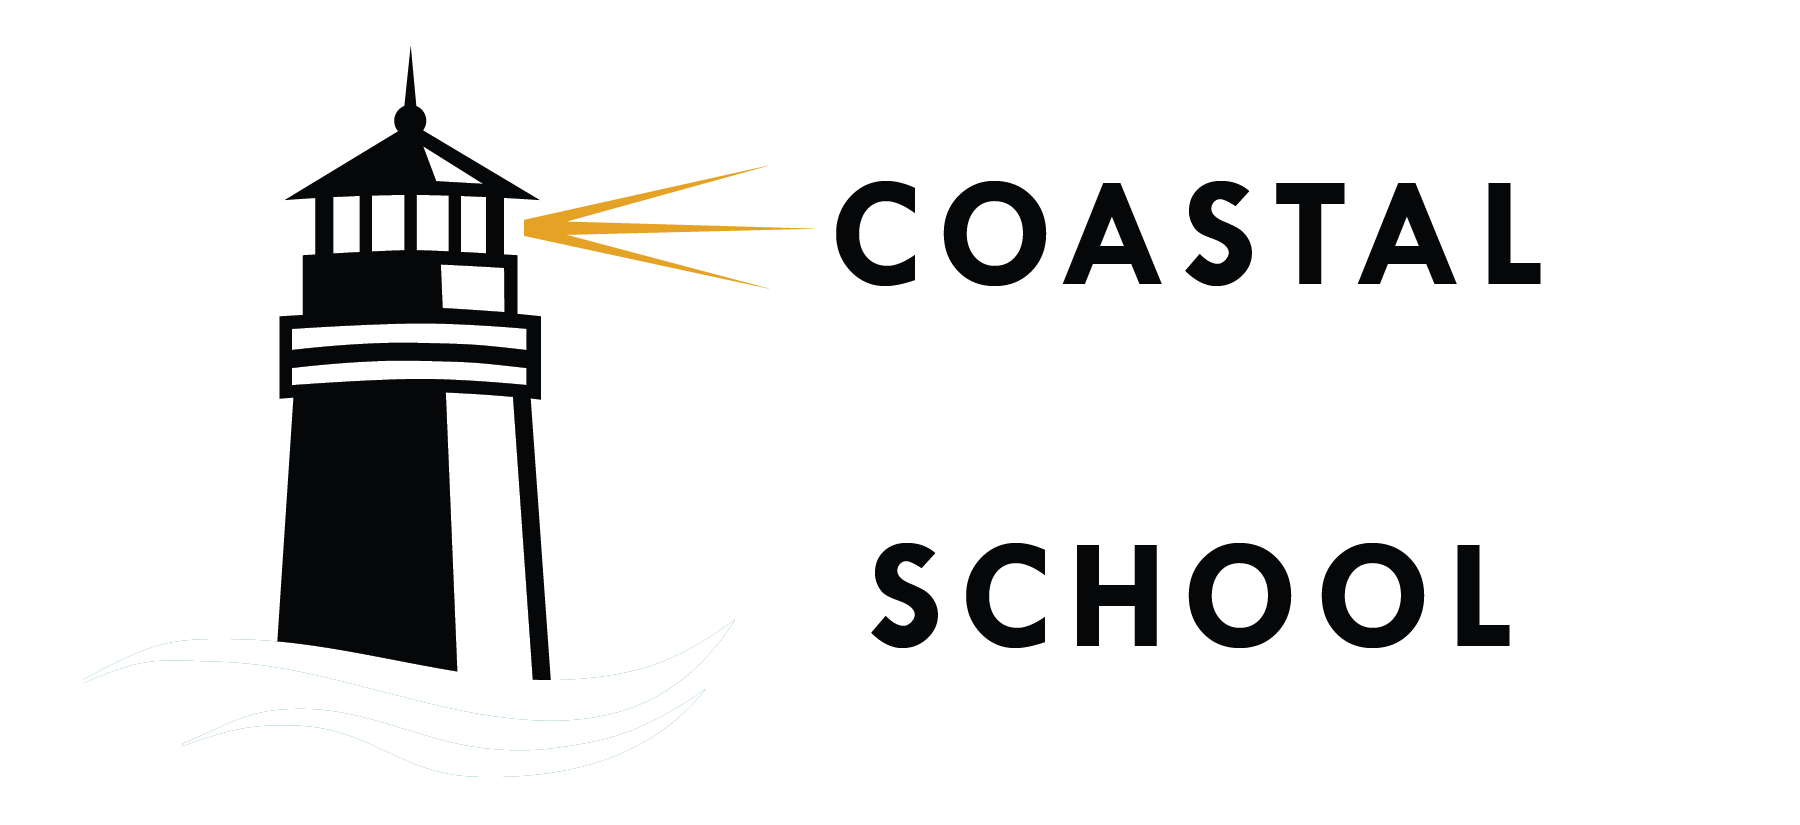 North Carolina Real Estate Classes - Coastal Real Estate School